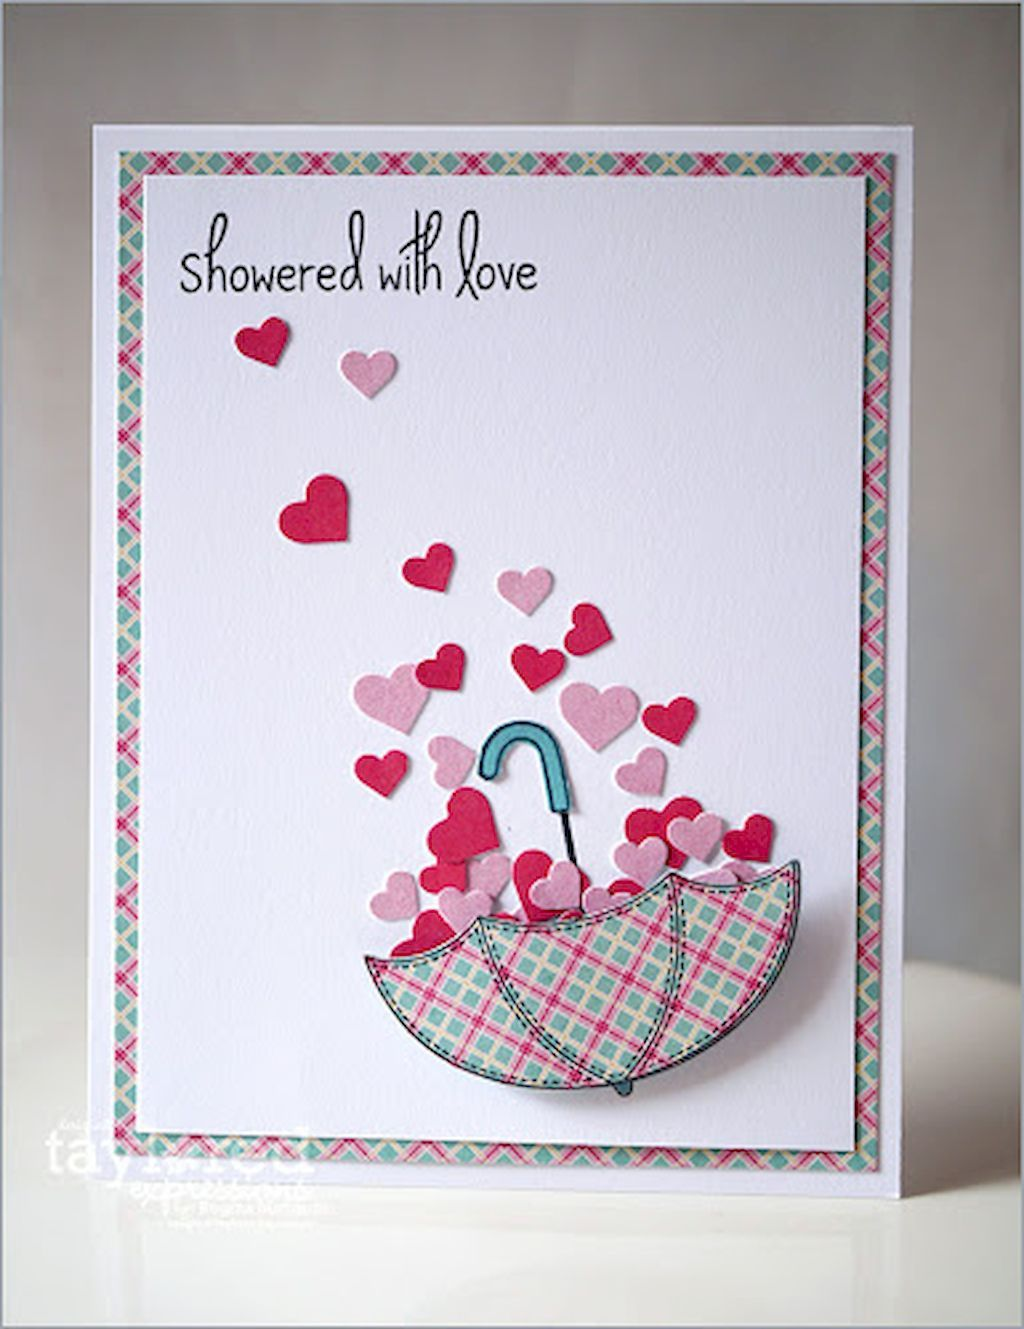 50 romantic valentines cards design ideas (37) | Valentine ...